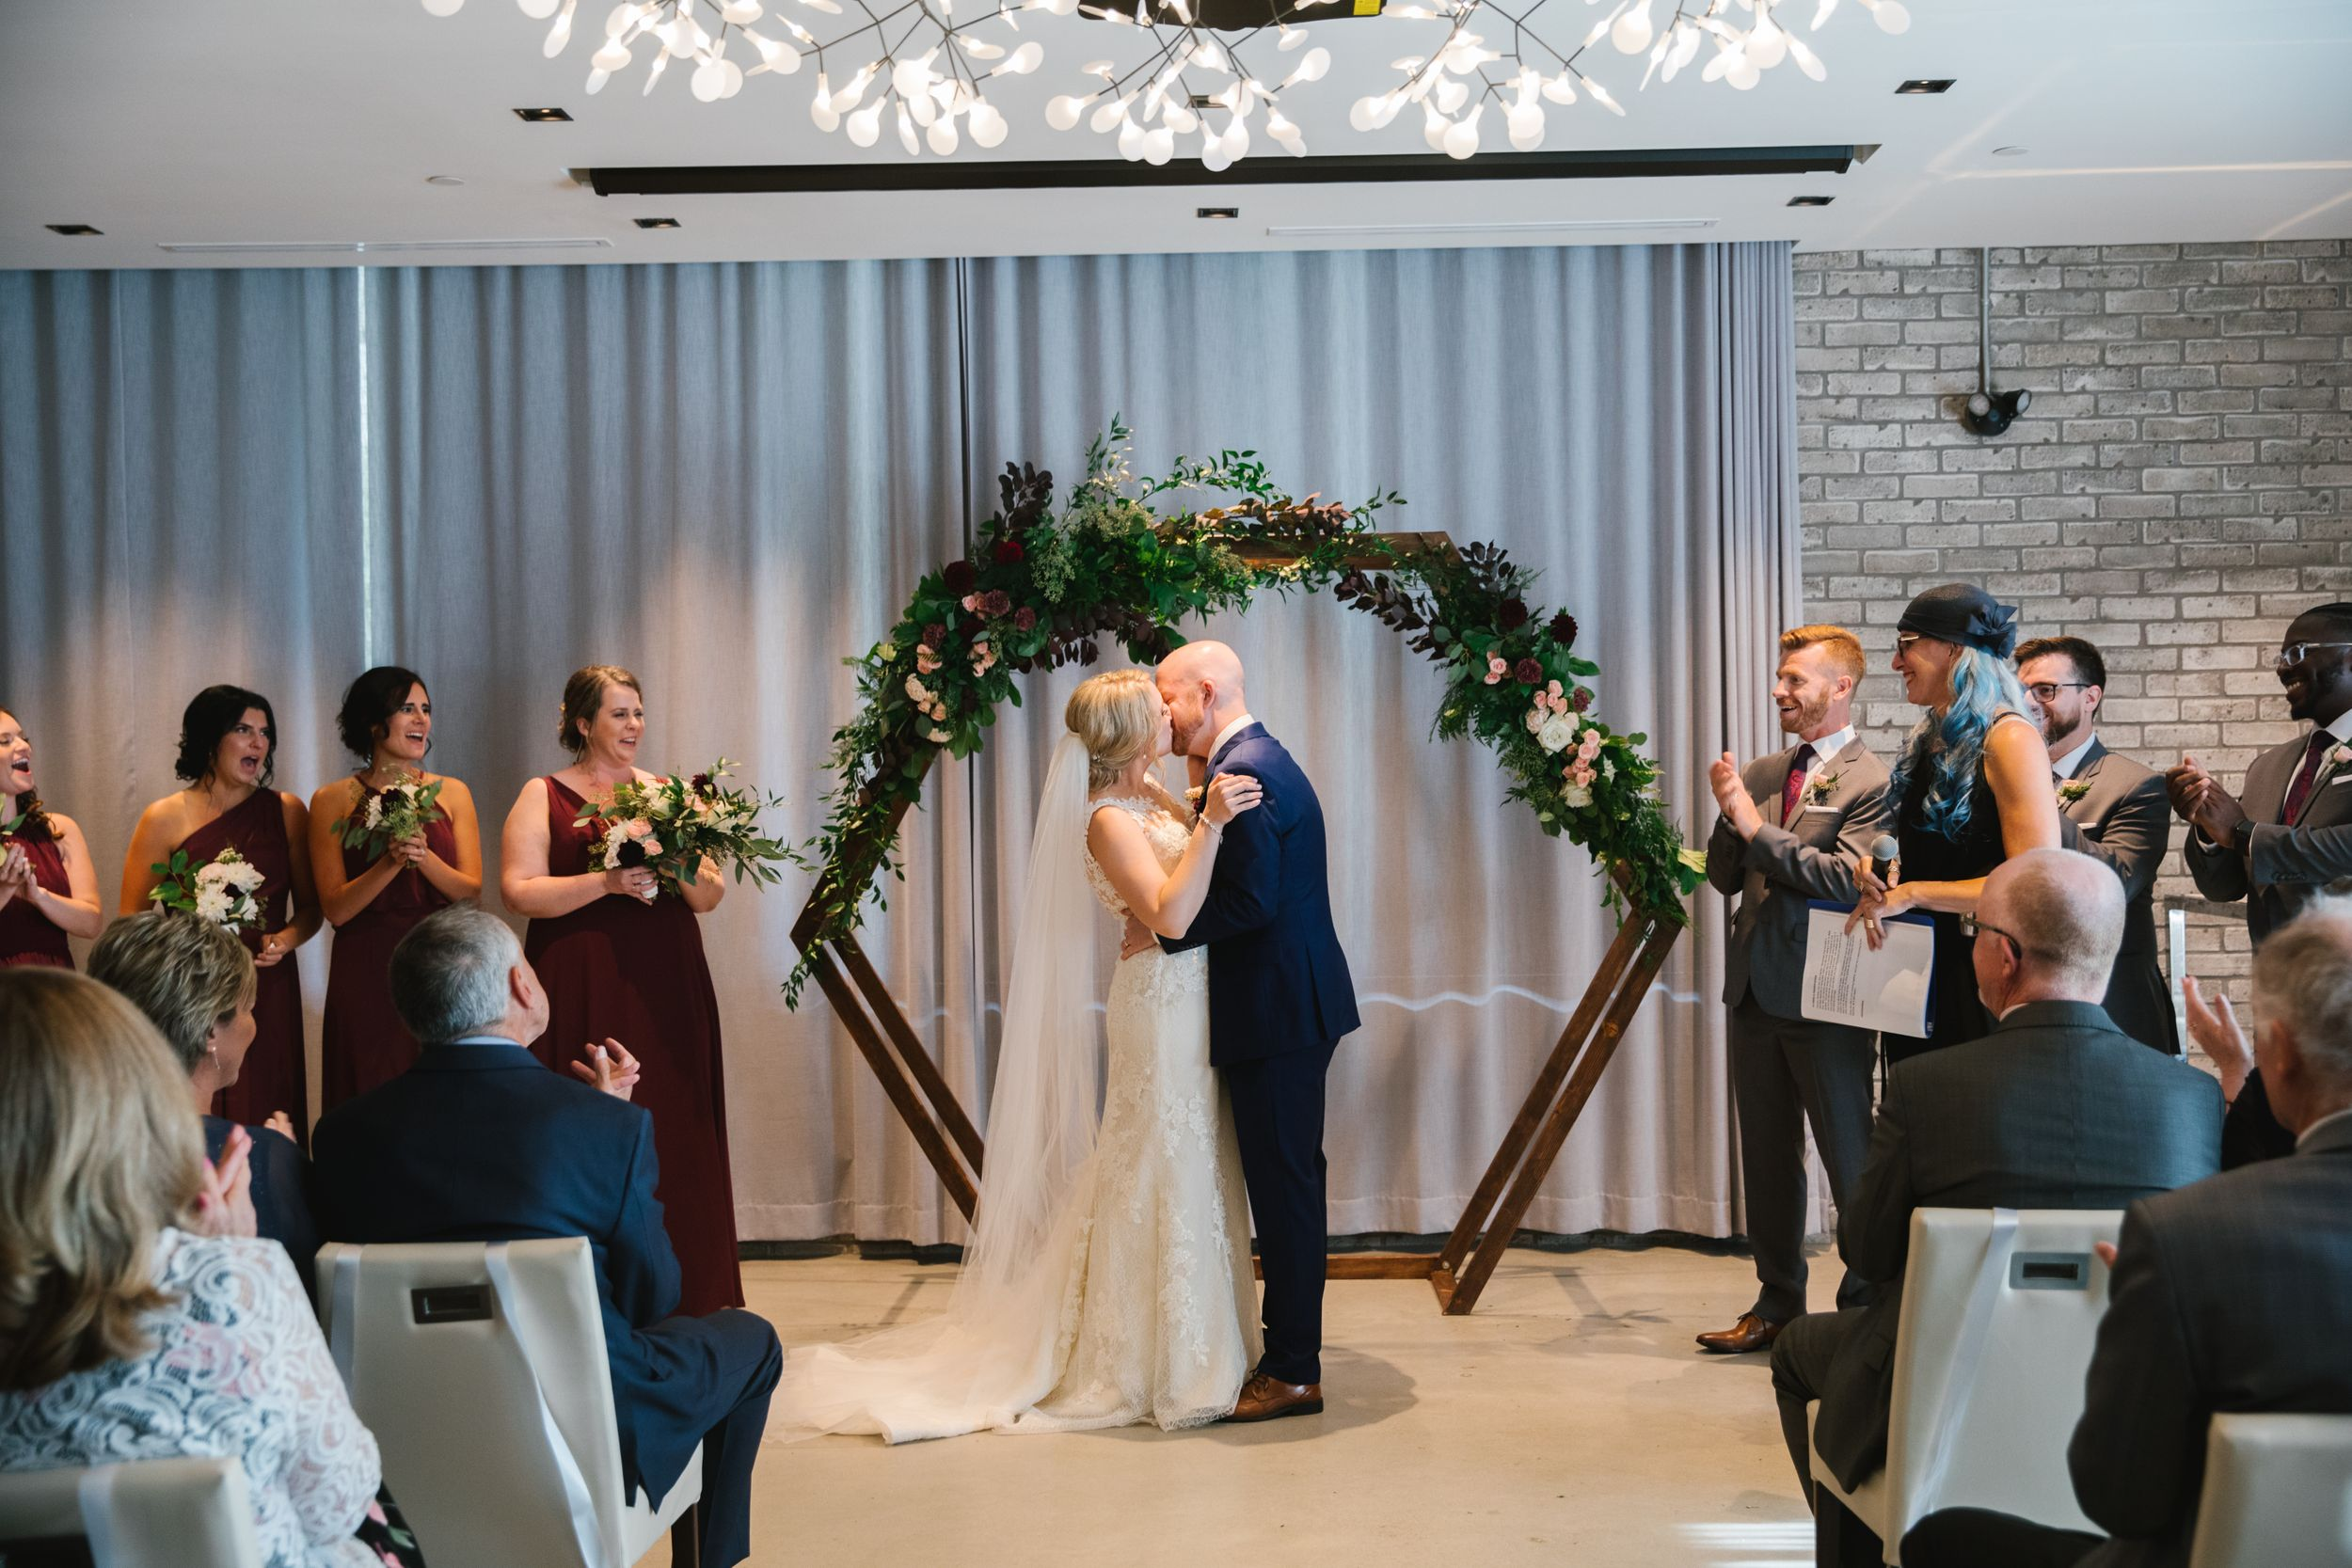 bride and groom first kiss hexagonal wedding arch with greenery indoors